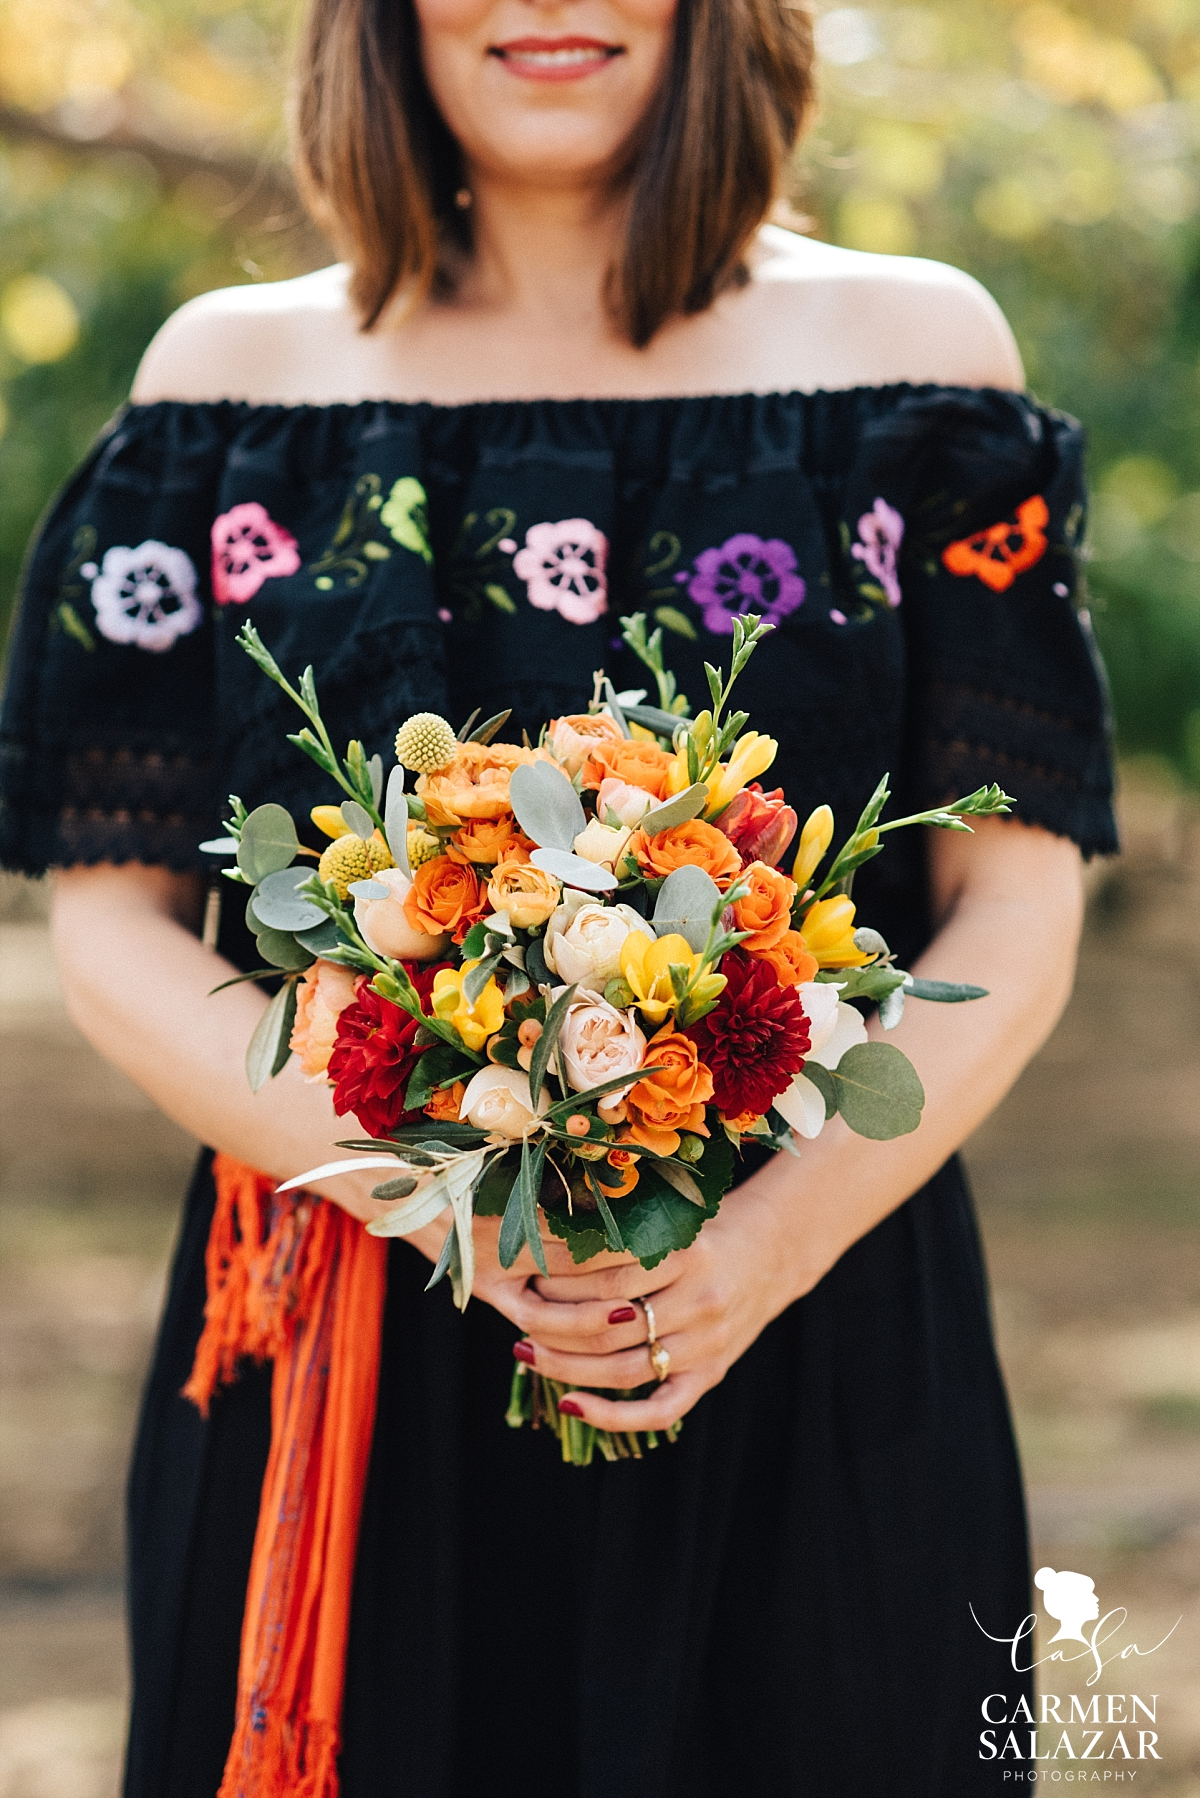 Mexican wedding style bouquet - Carmen Salazar